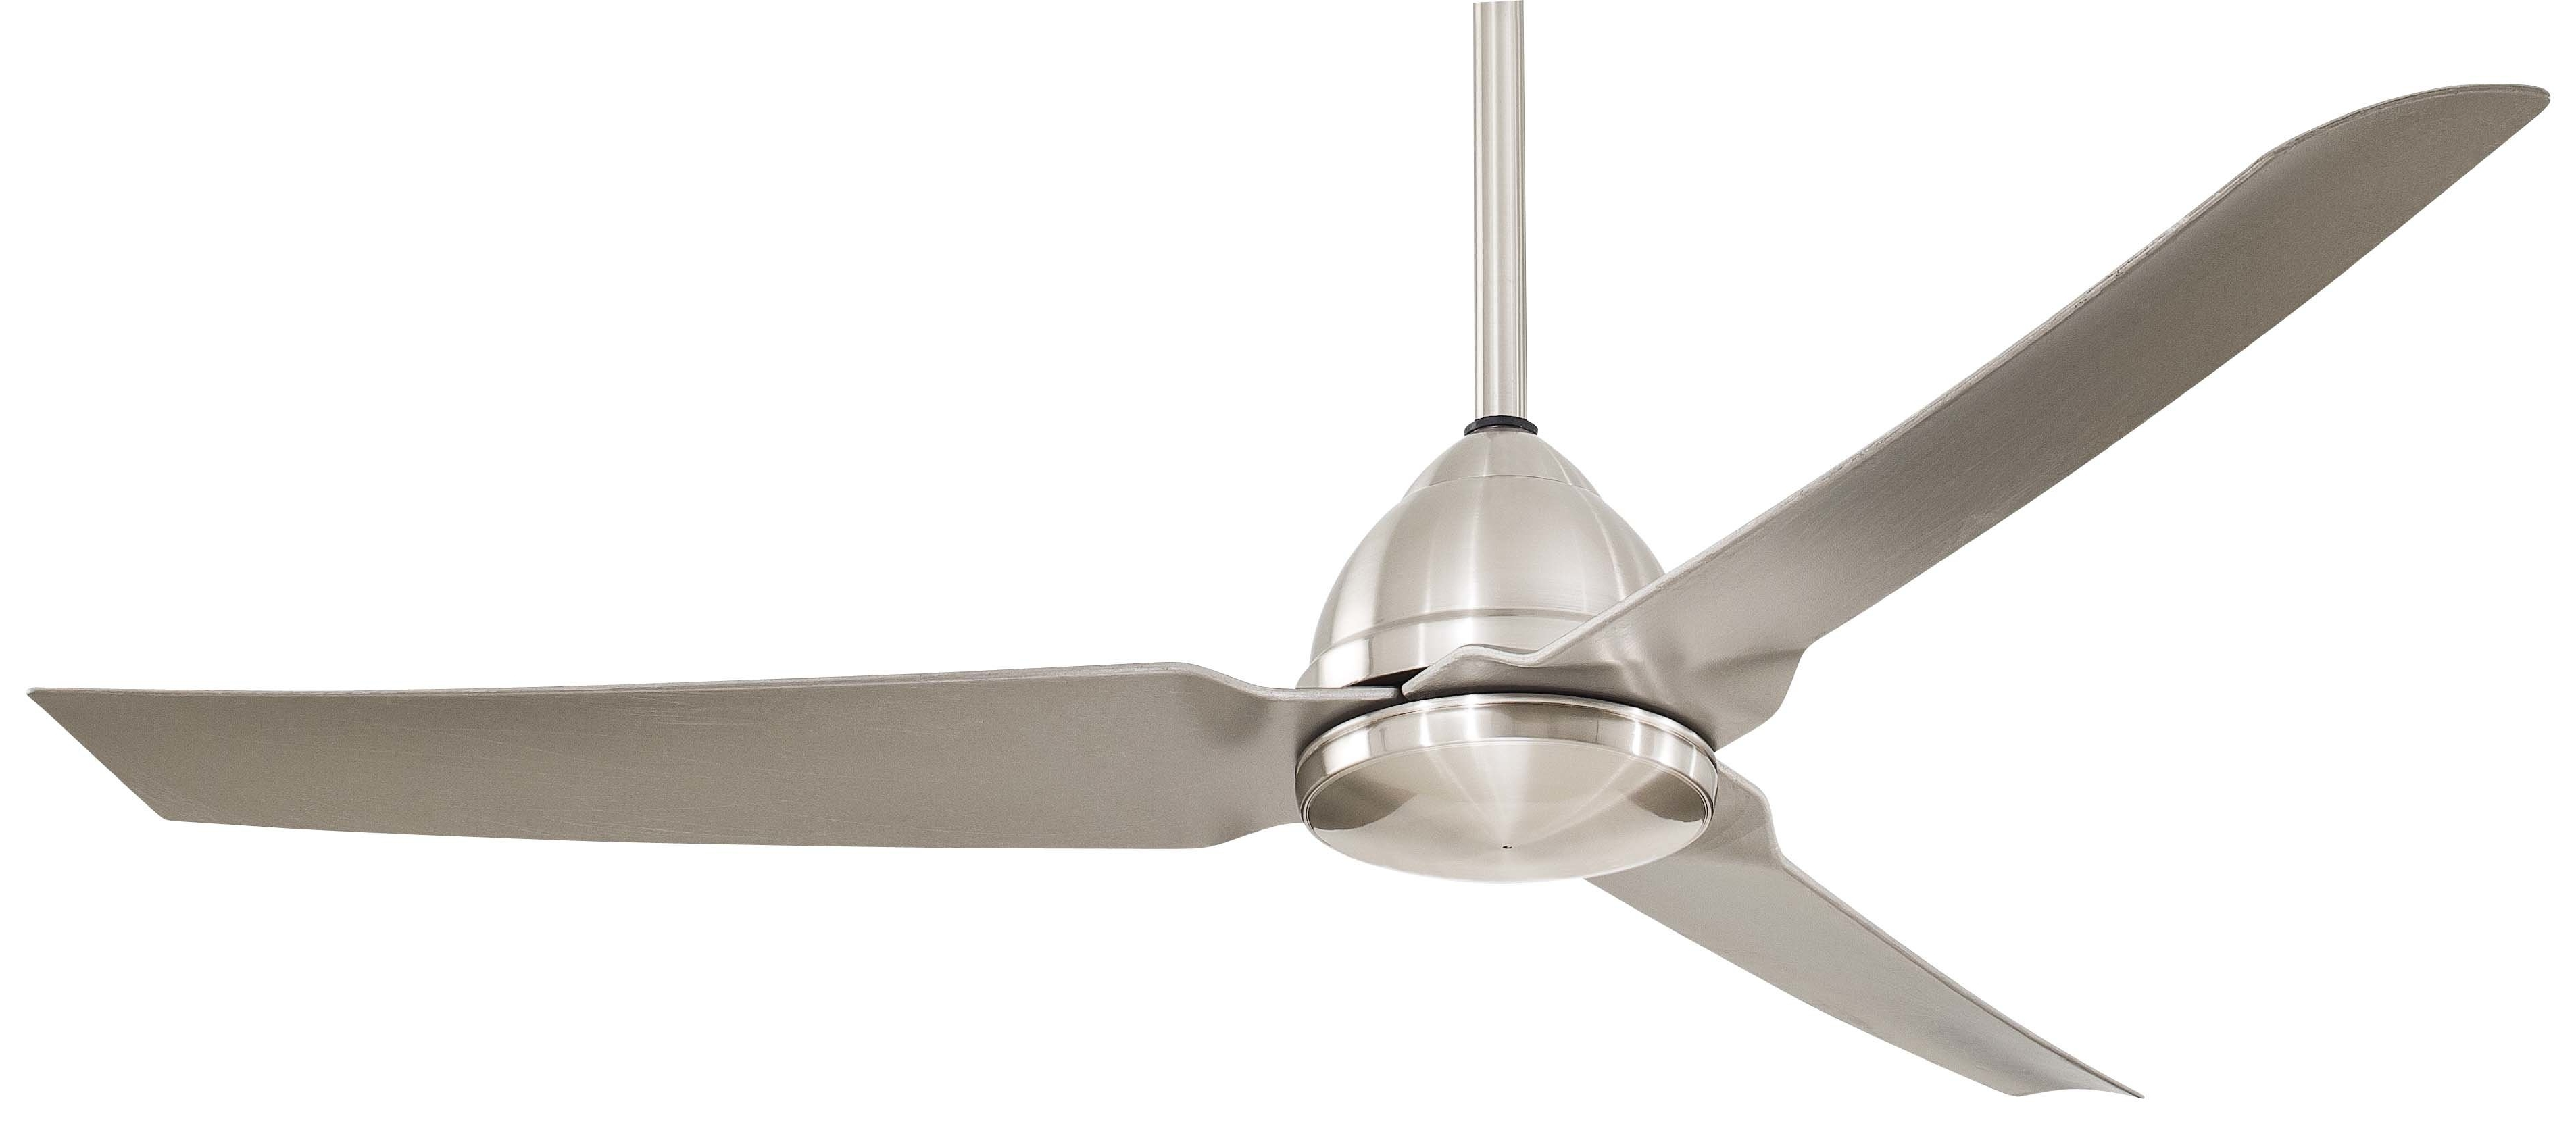 Wayfair Outdoor Ceiling Fans Within Most Recent Outdoor Ceiling Fans You'll Love (View 17 of 20)